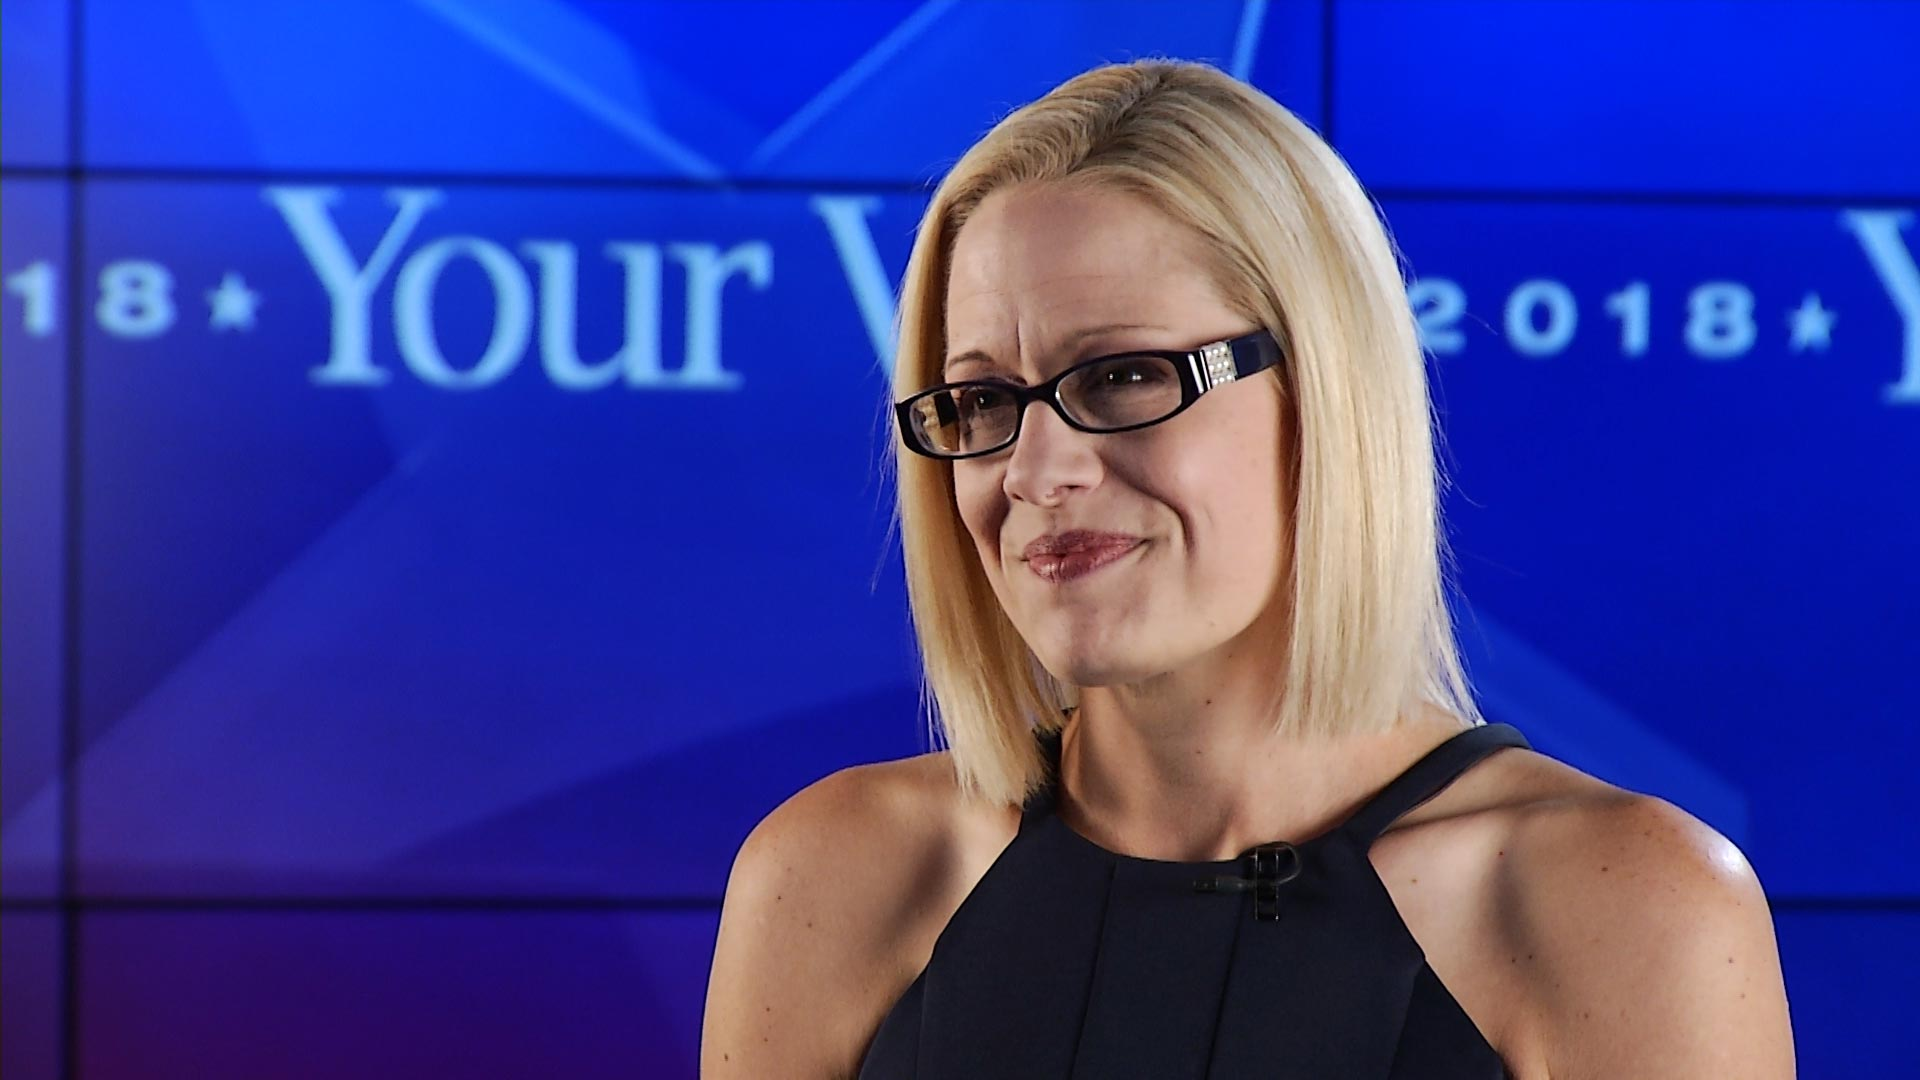 Democratic Representative Kyrsten Sinema during an interview at Arizona Public Media about her run for U.S. Senate.